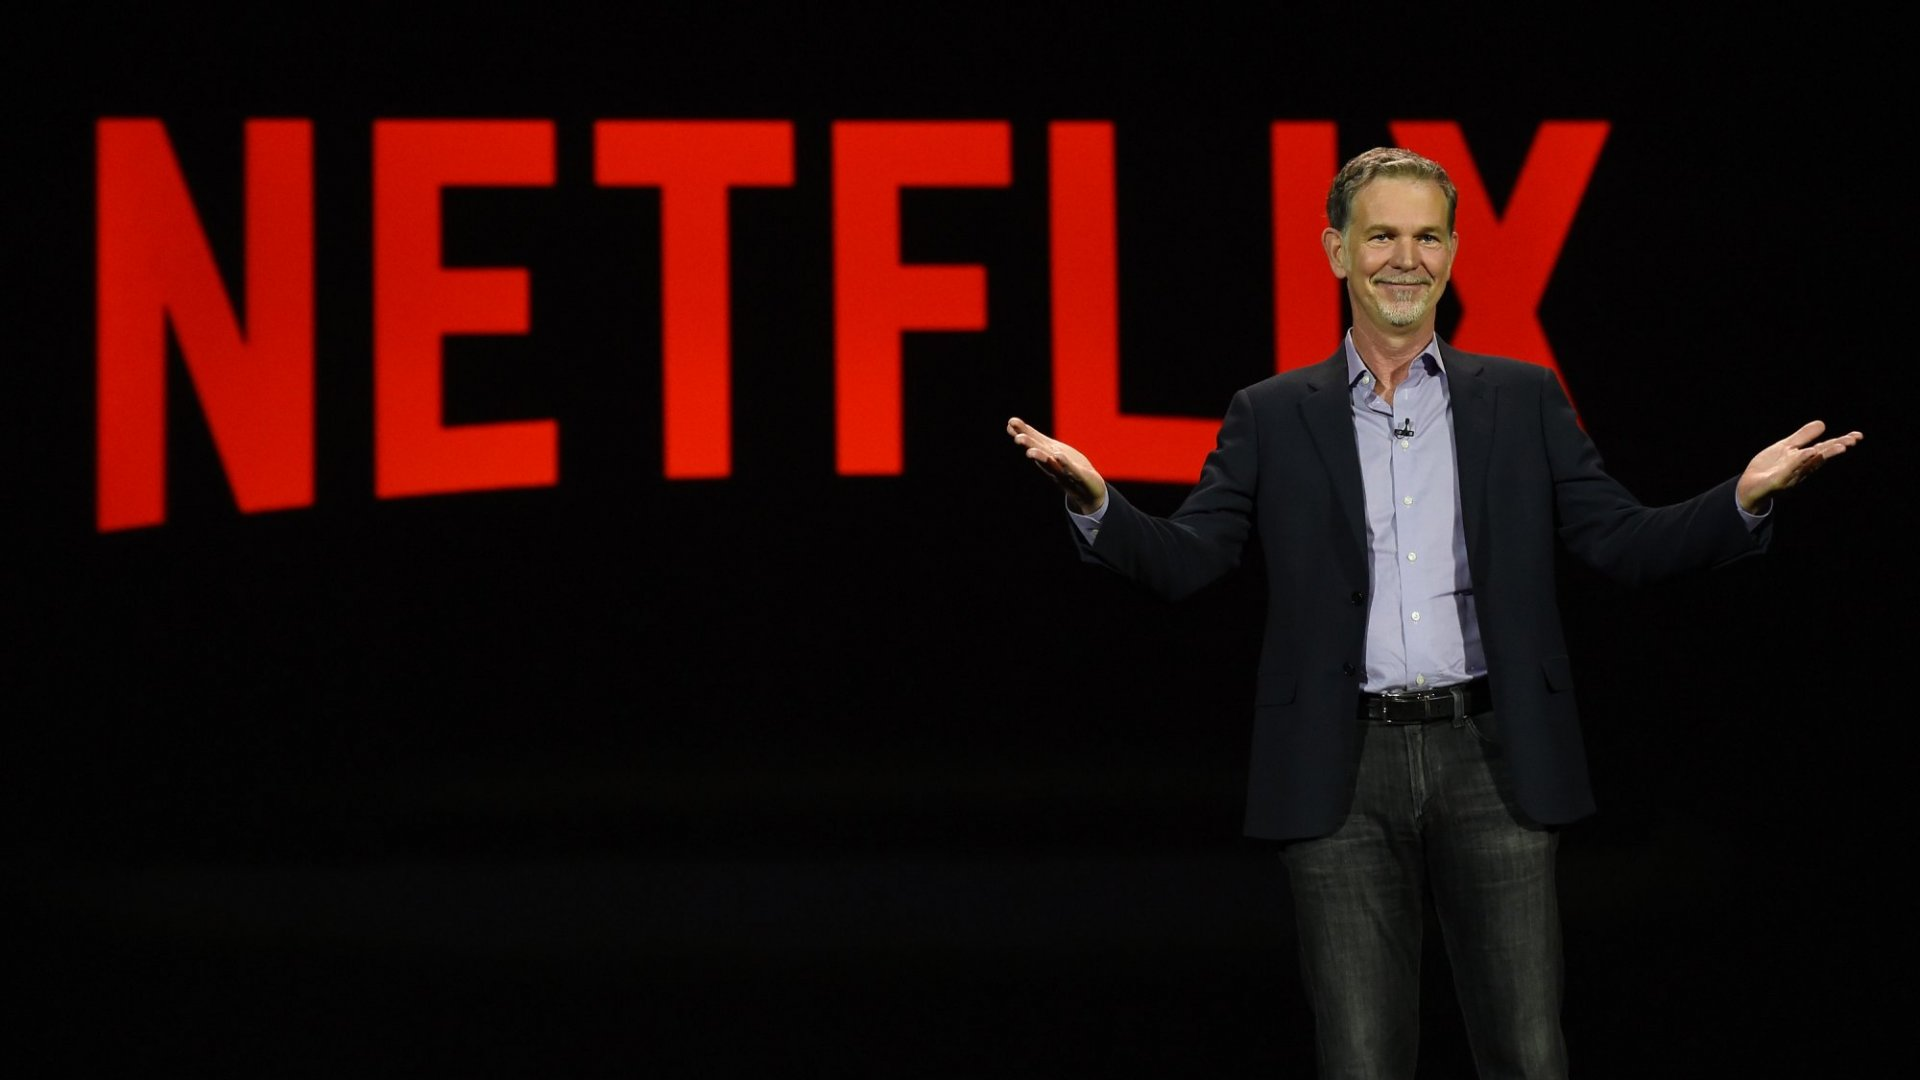 Netflix CEO Reed Hastings to Create a $100 Million Fund for Education